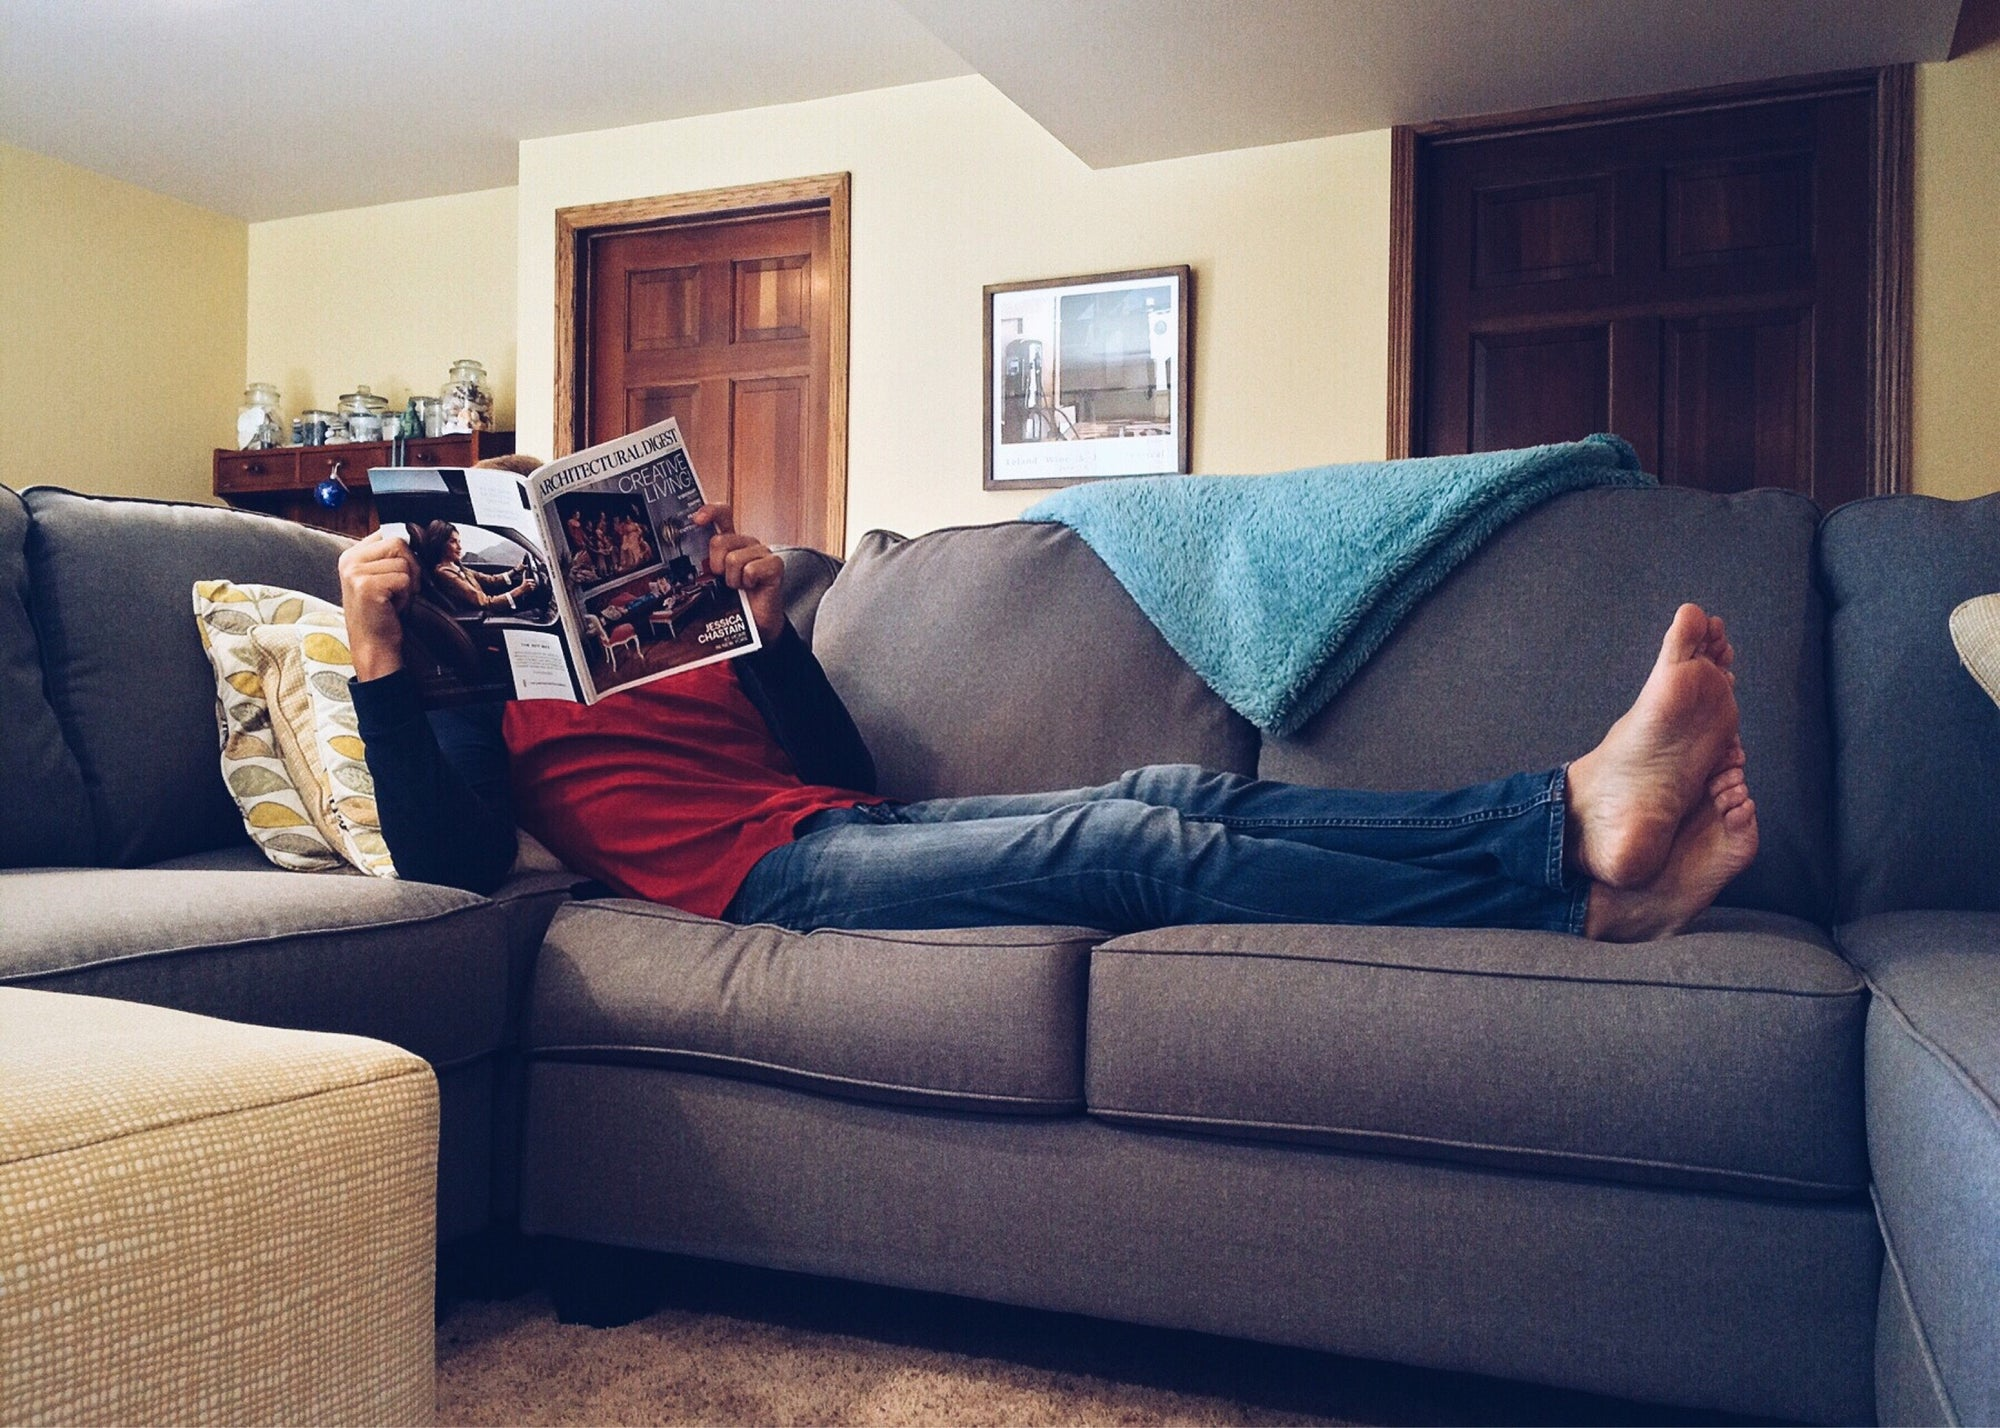 Couch Hacks to Update a Tired Sofa